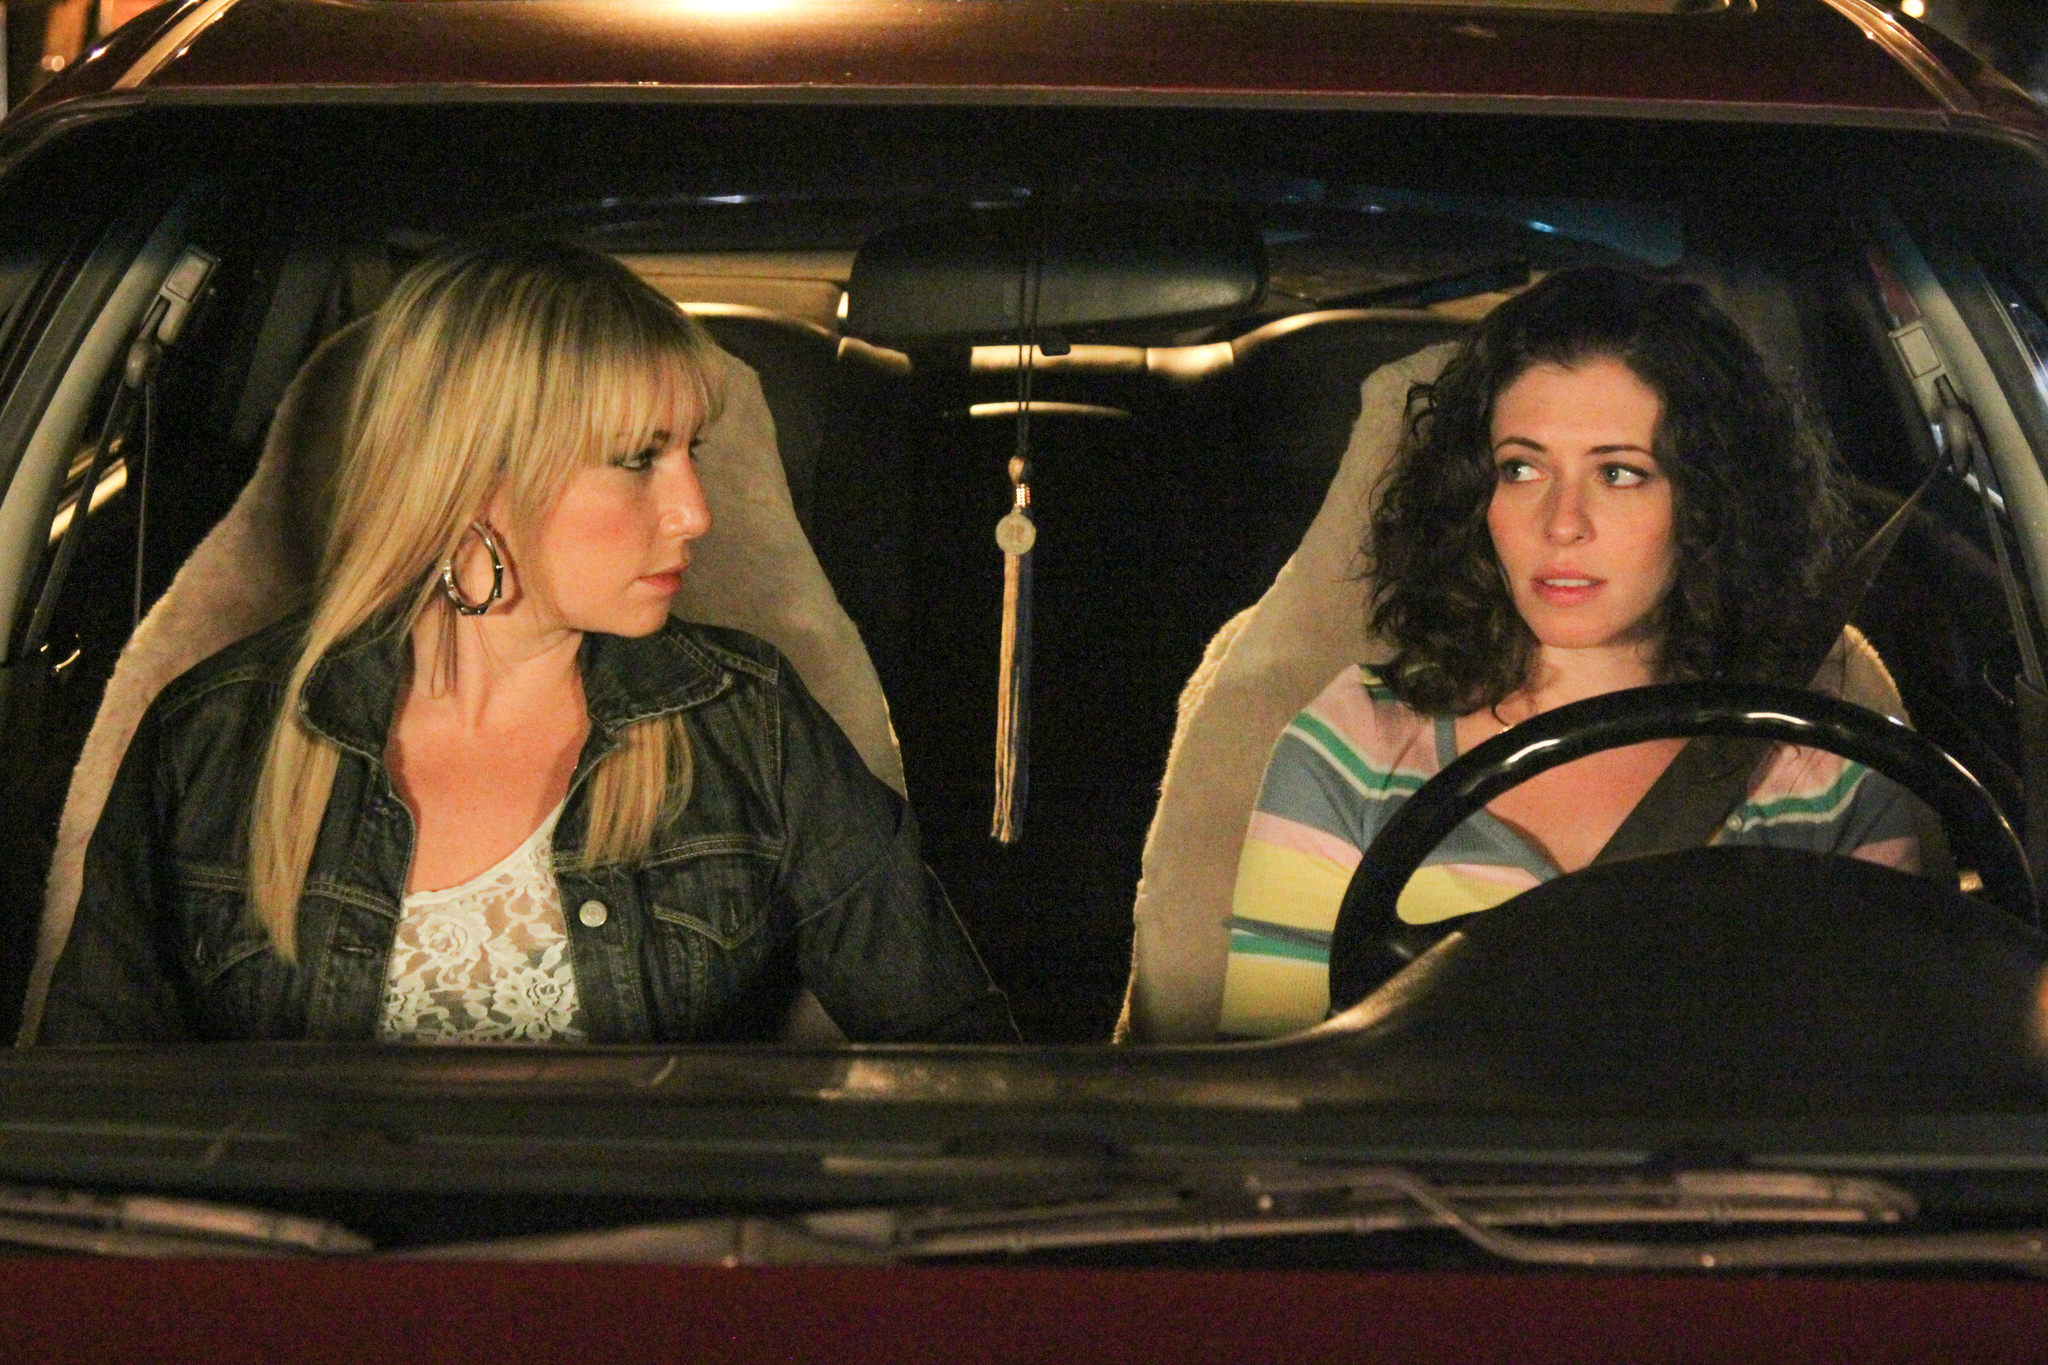 Ari Graynor and Lauren Miller Rogen in For a Good Time, Call... (2012)